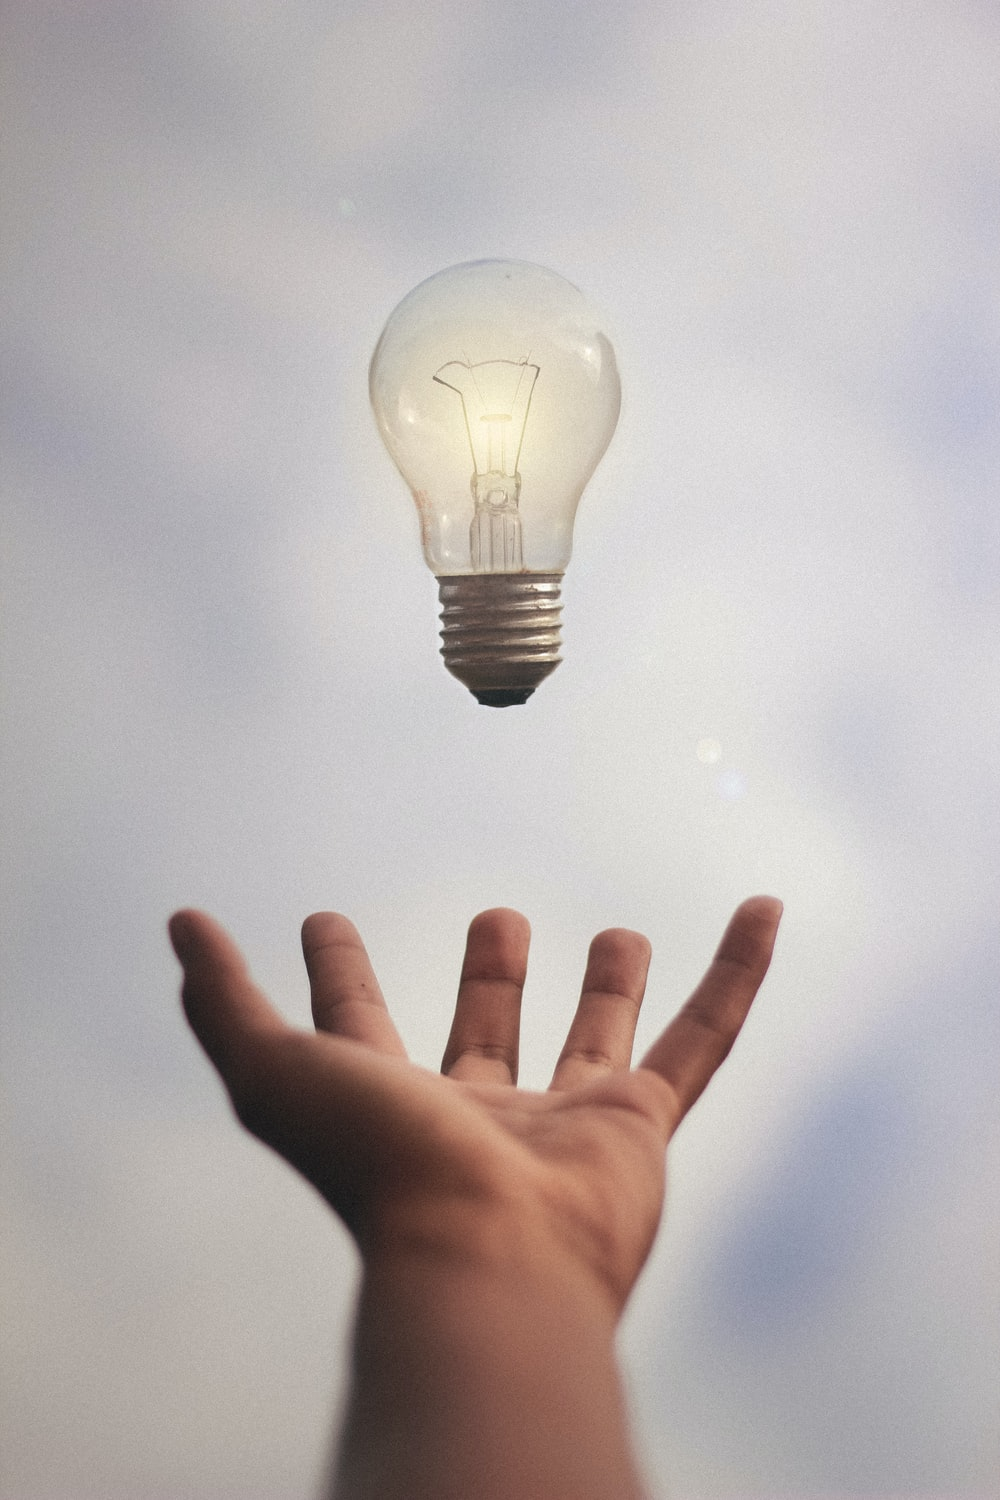 100 Light Bulb Images Free Pictures On Unsplash